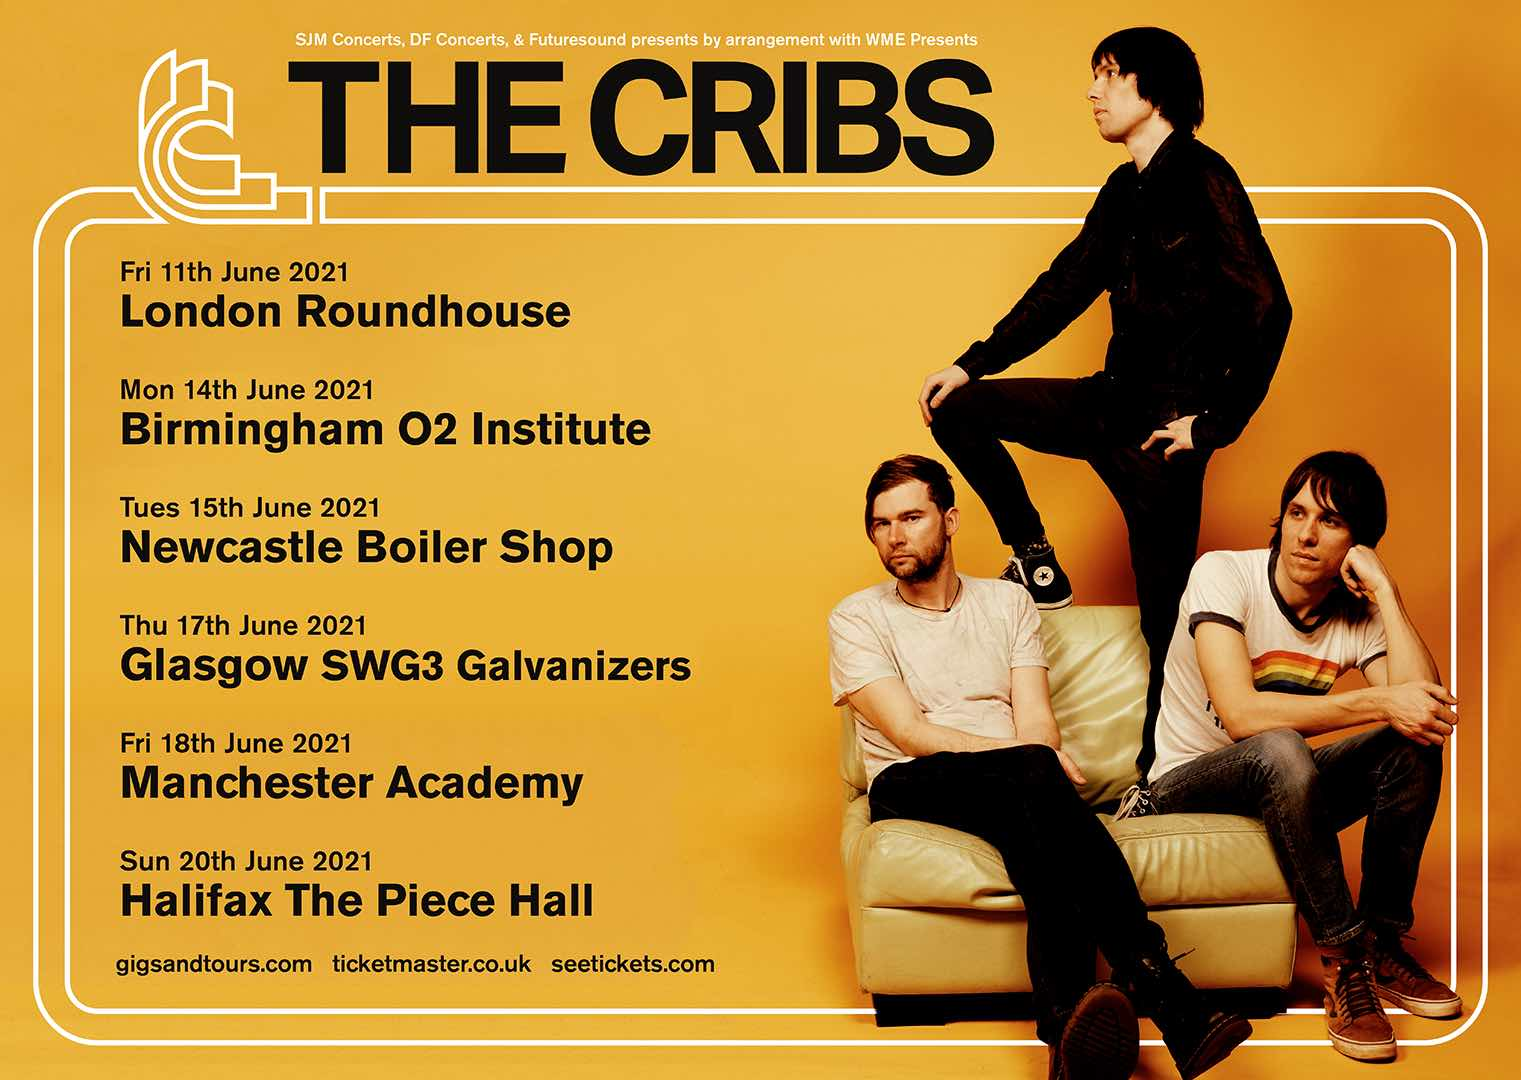 The Cribs announce UK tour for June 2021